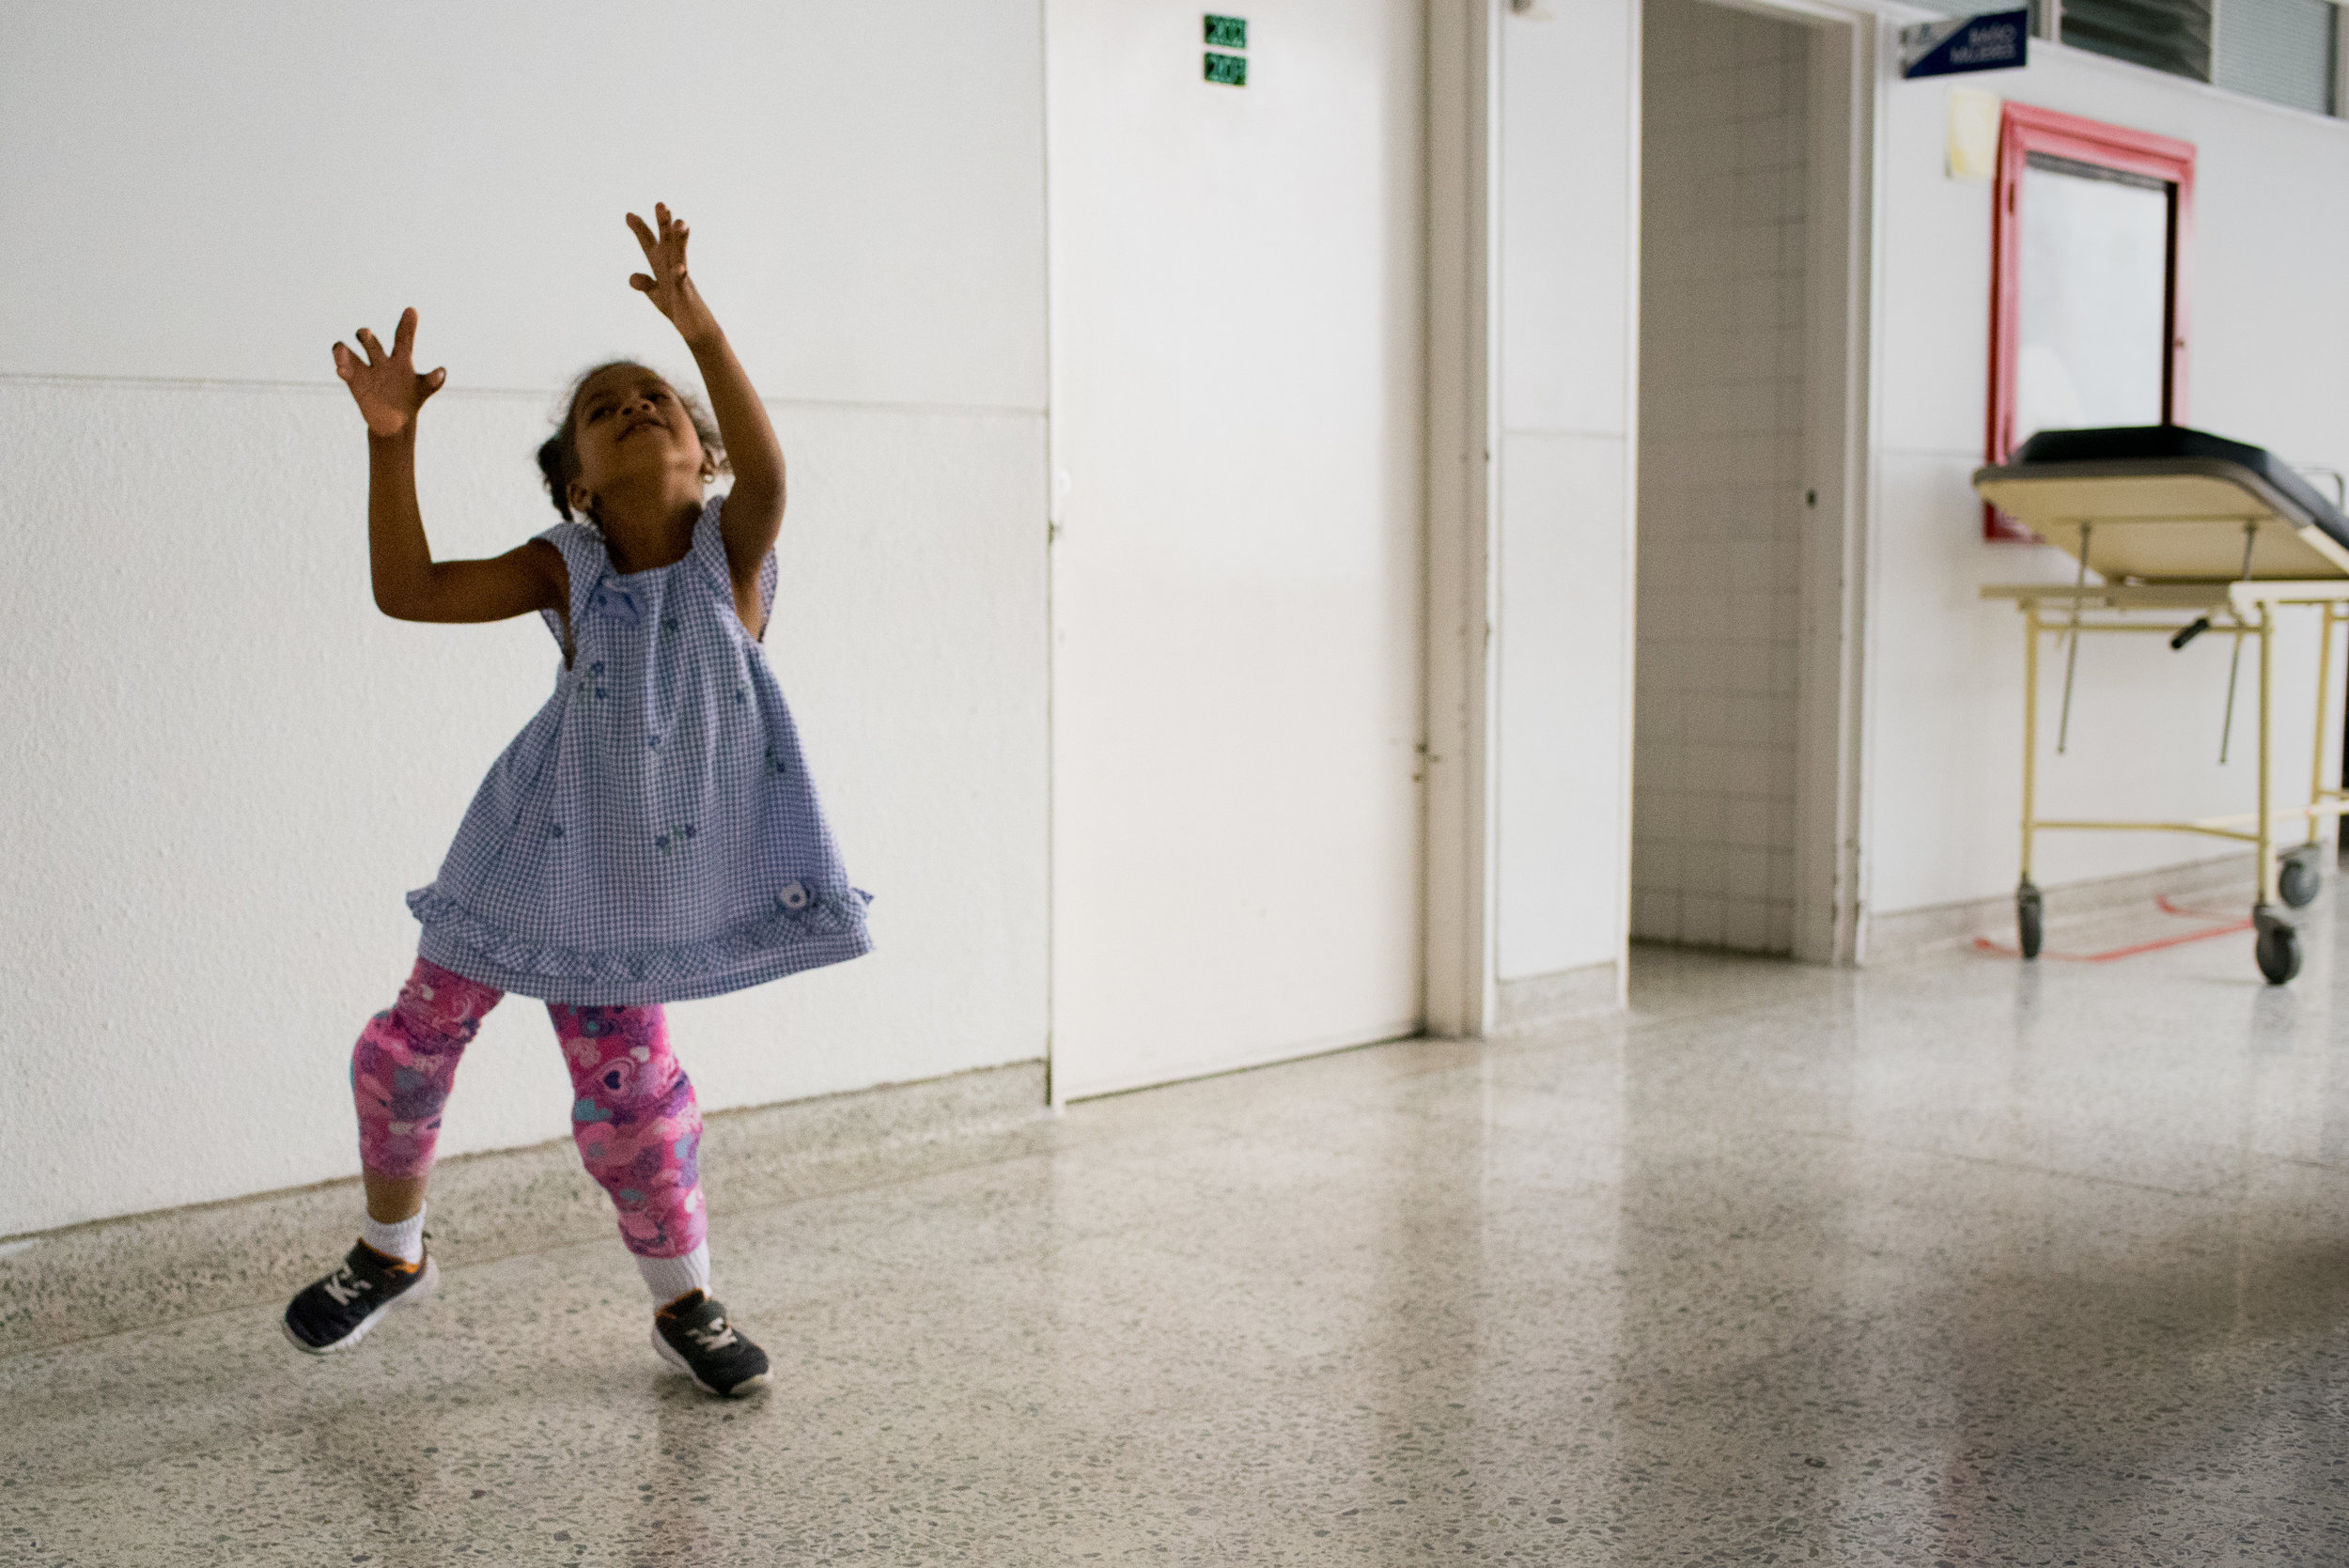 Ebony dances in the hospital corridor before she goes in for the last hand surgery.